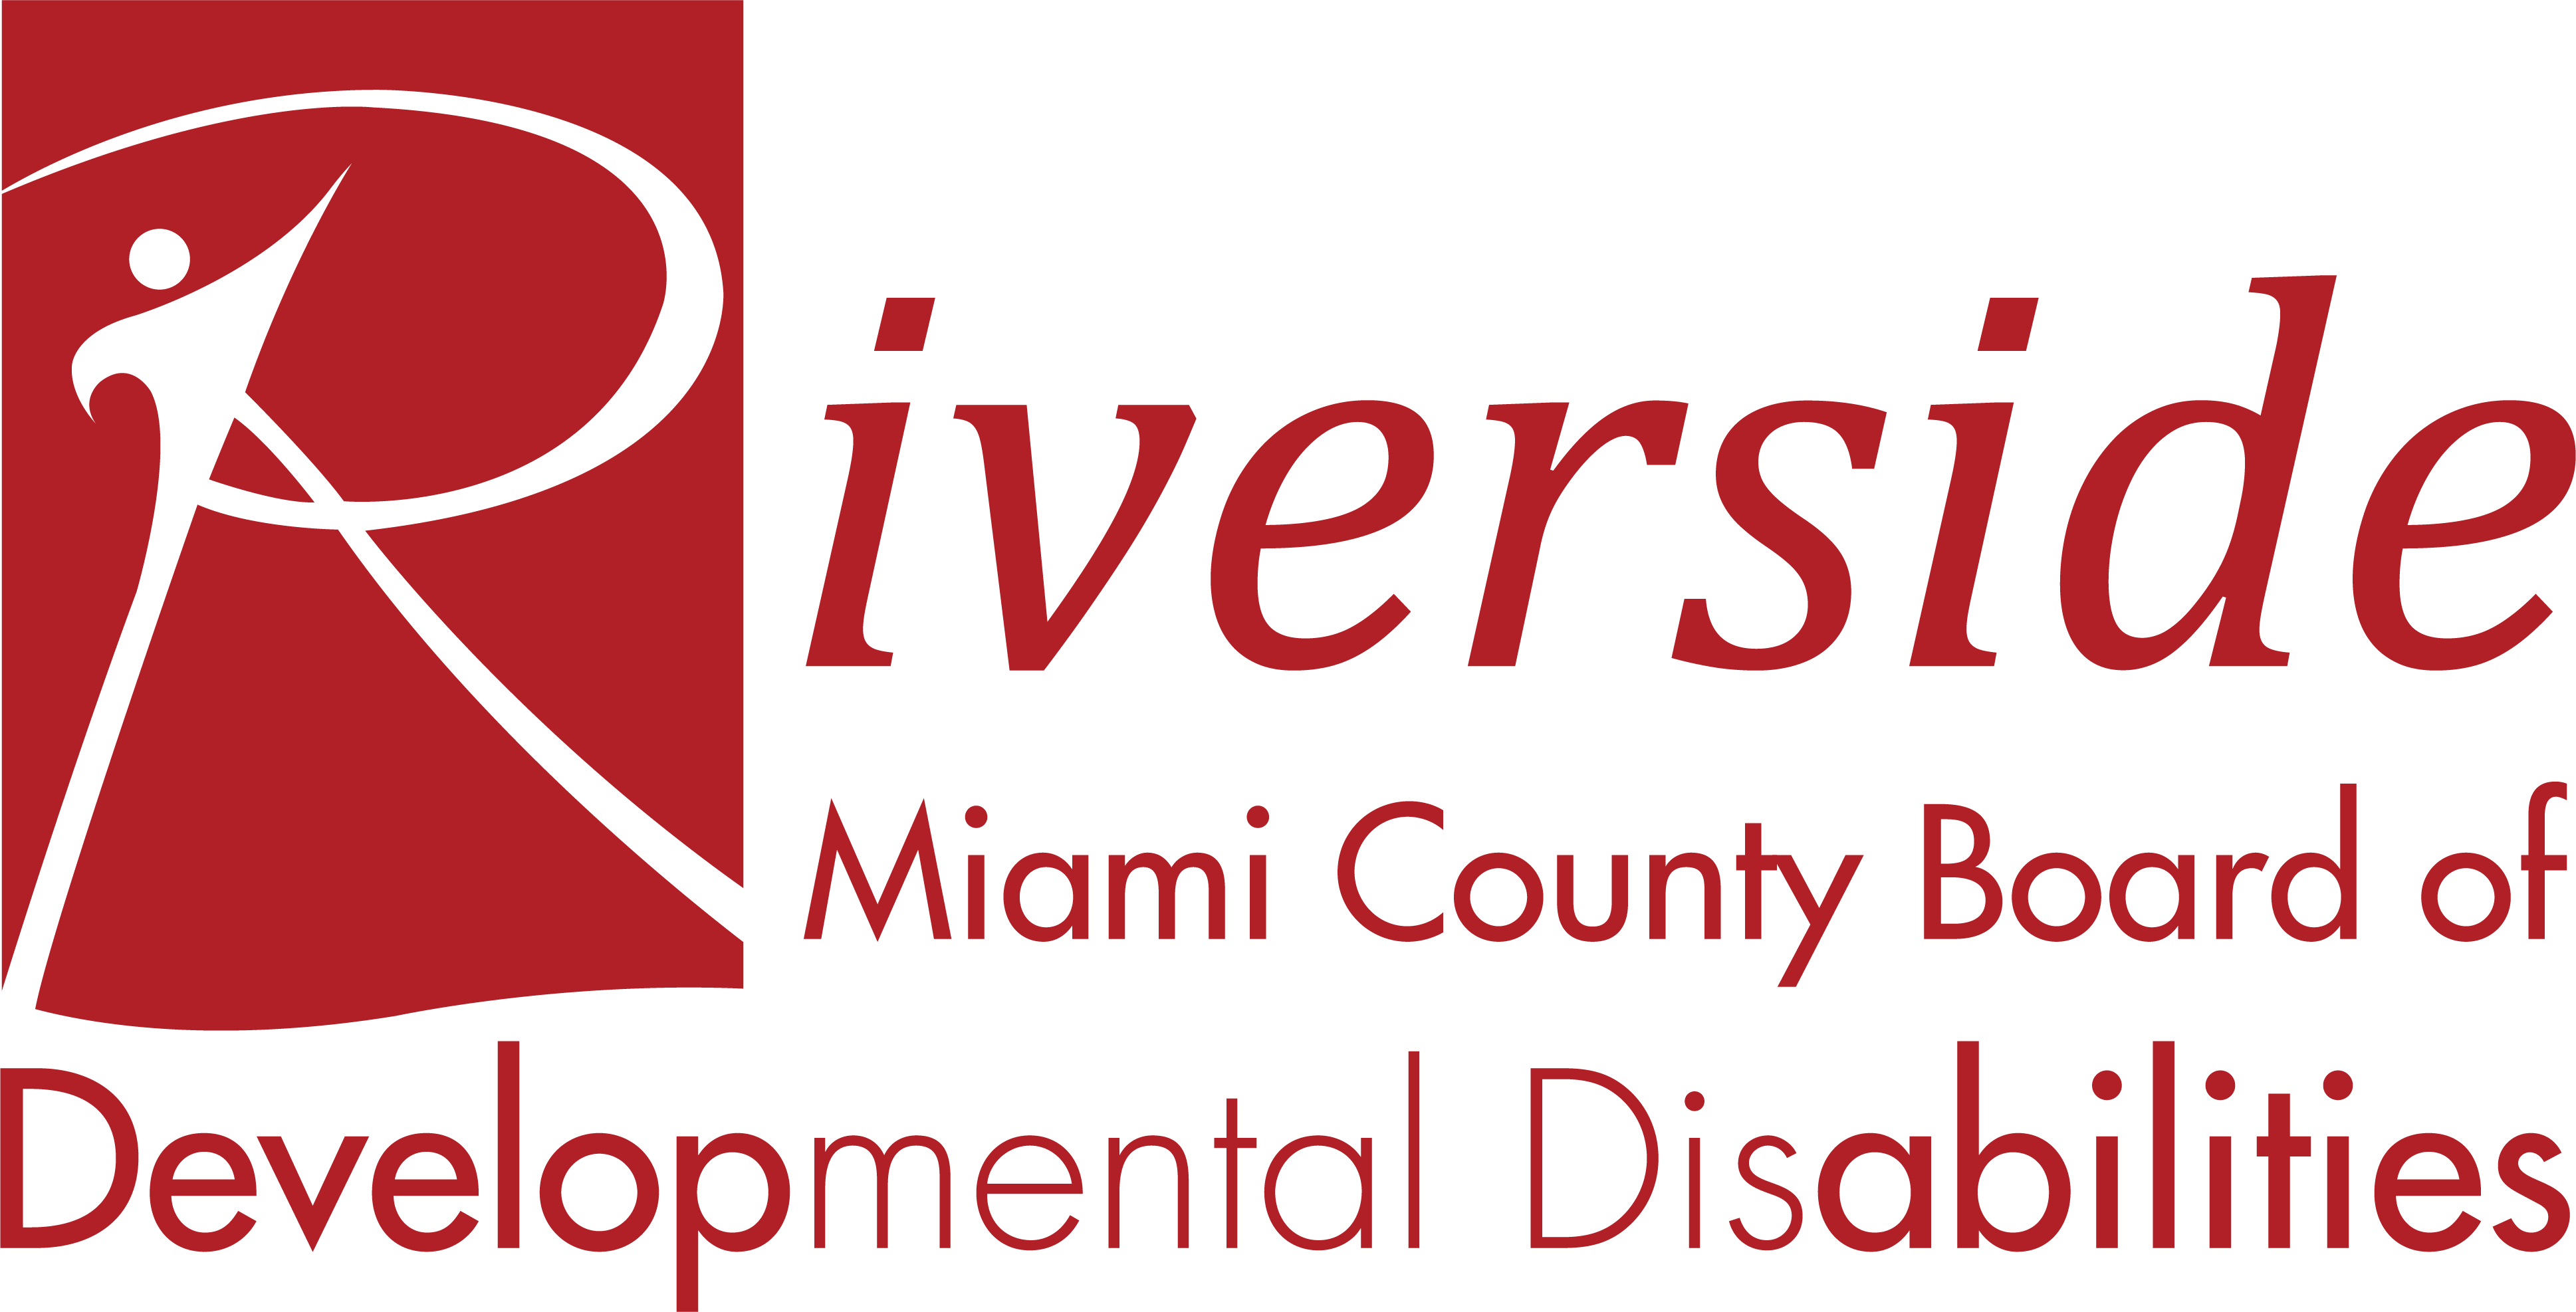 Riverside Miami County Board of Disabilities Logo